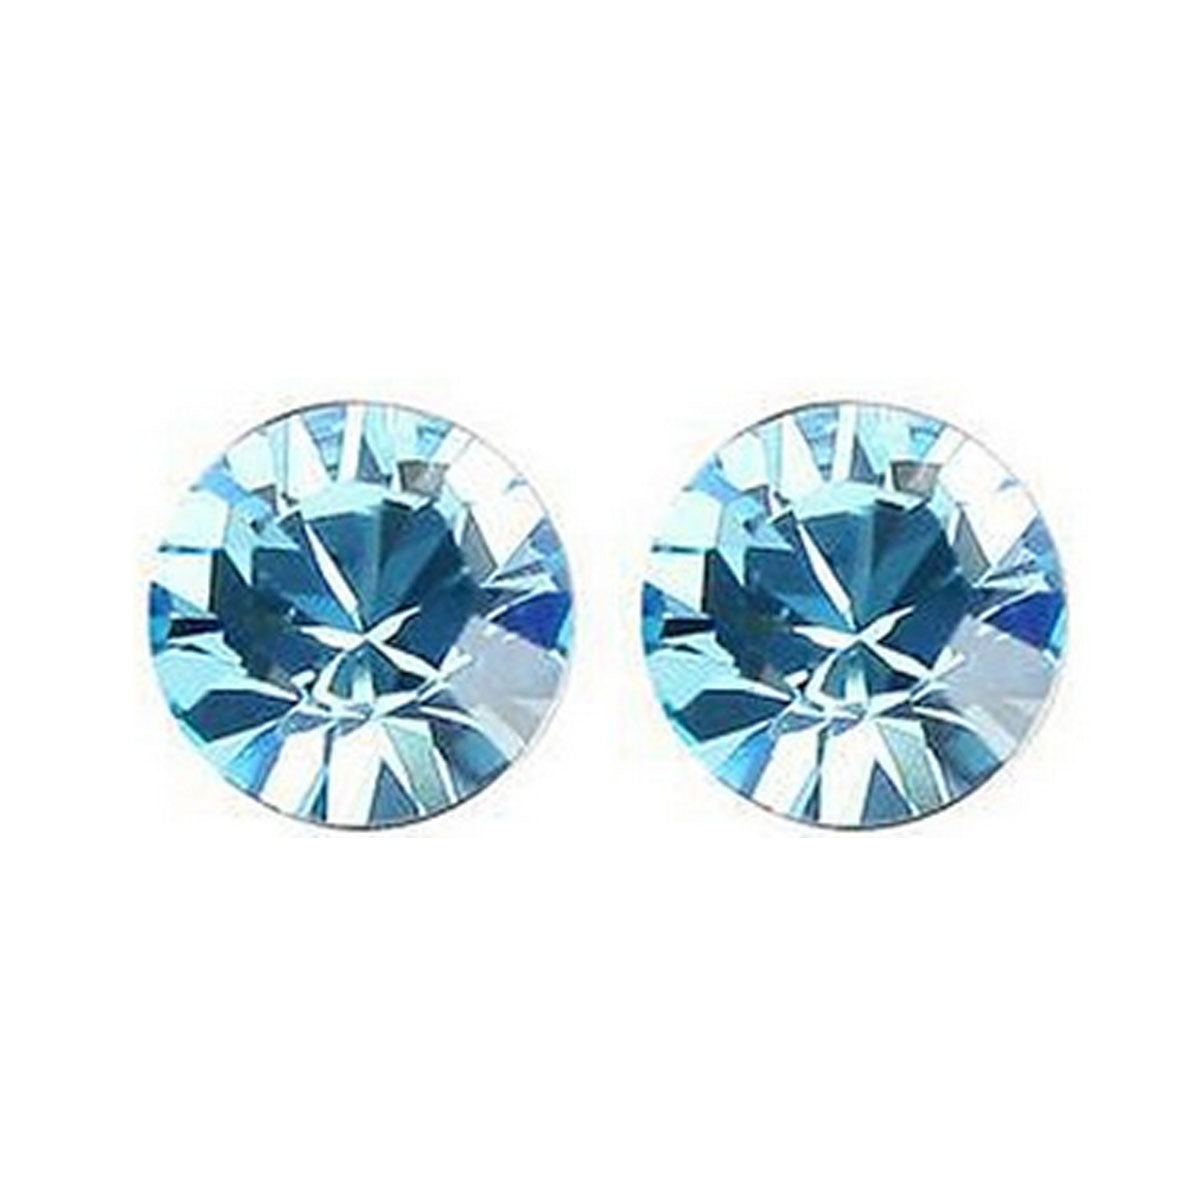 Wrapables Small Sea Blue Swarovski Elements Crystal Stud Earrings